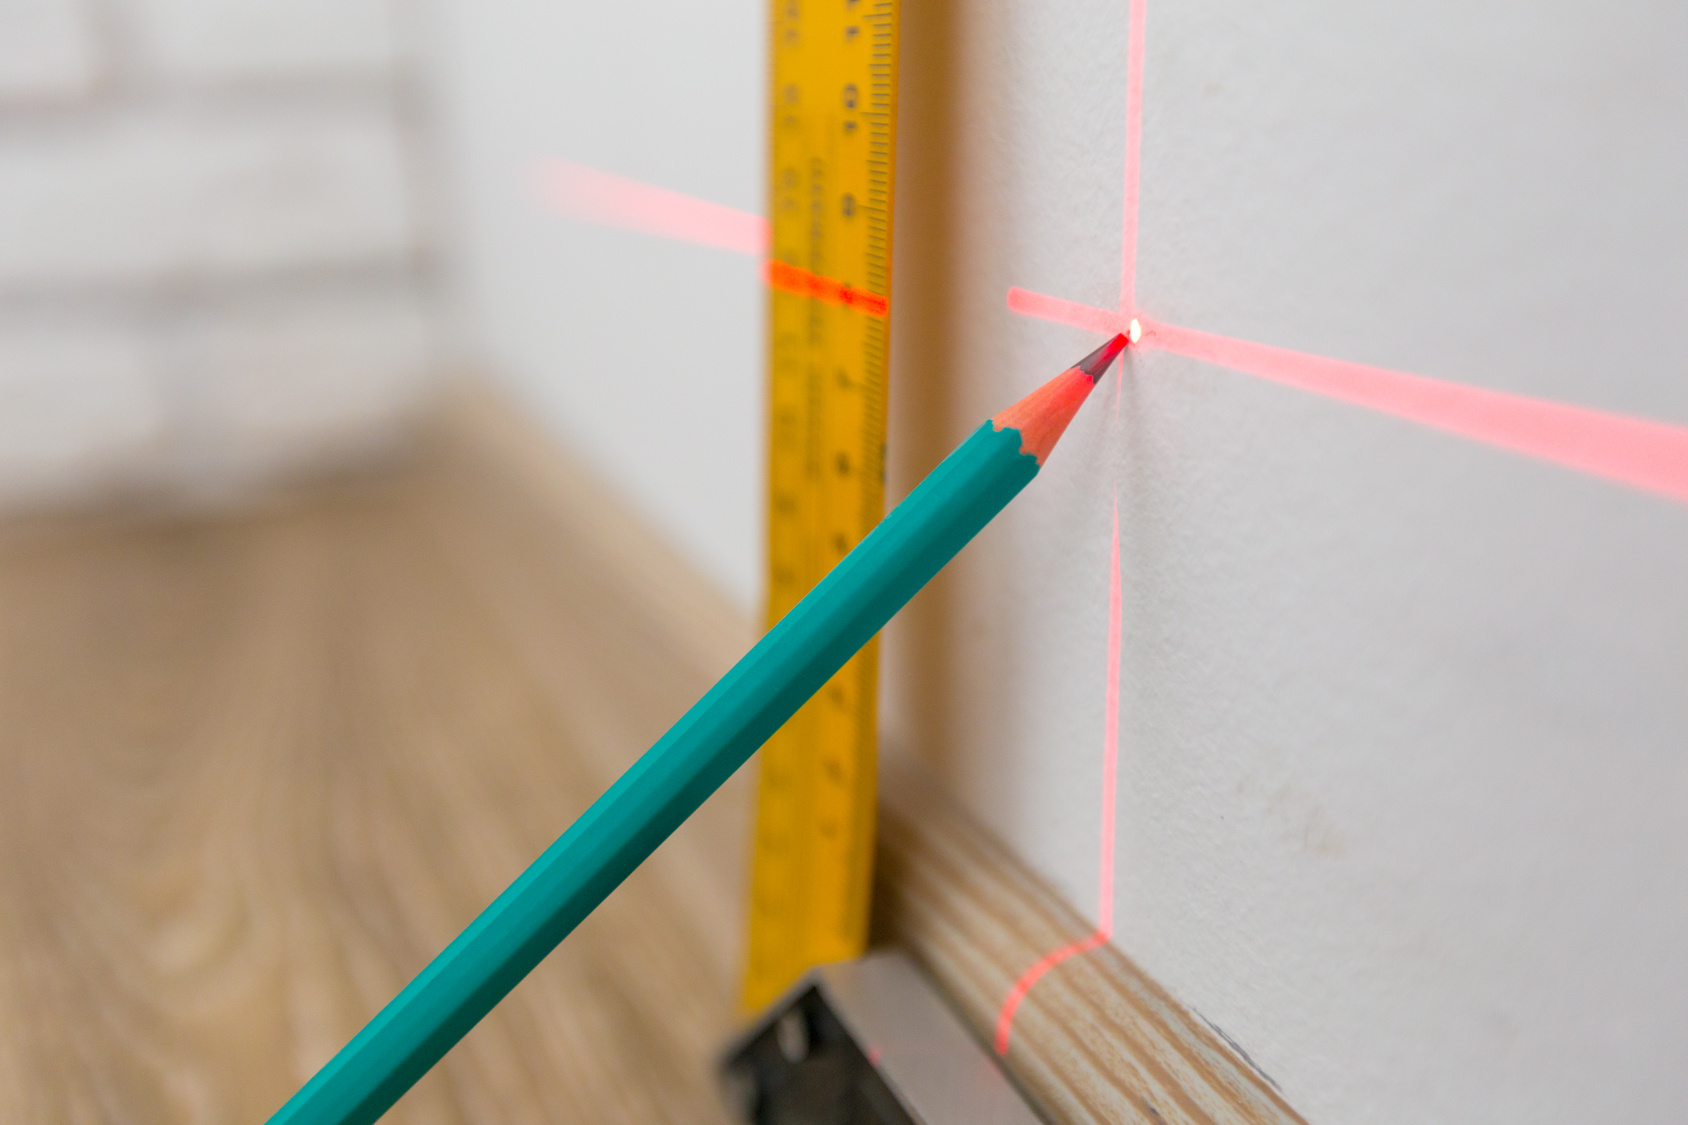 Laser level and lines on the wall